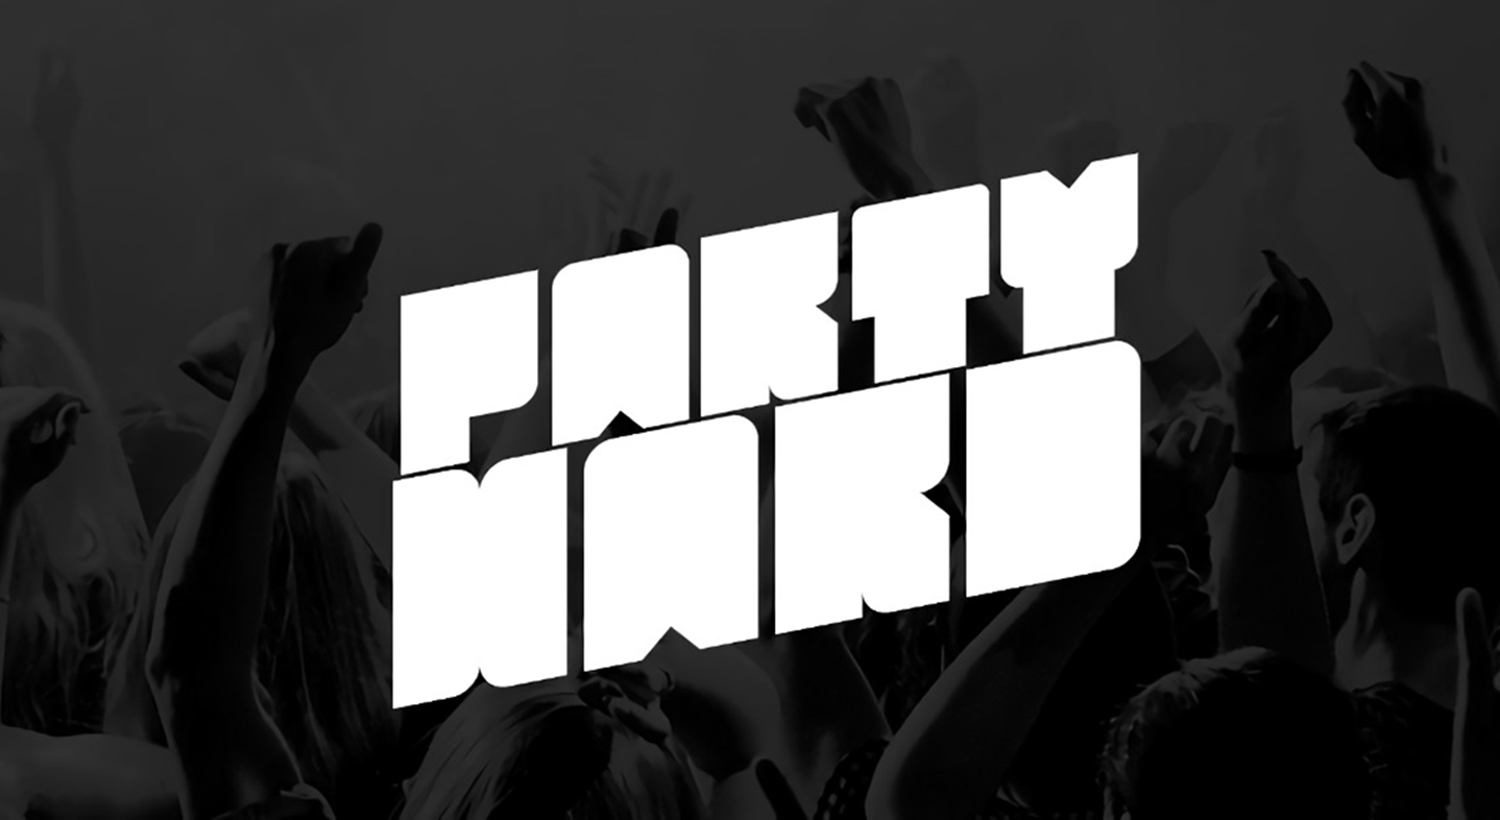 20 Exciting Party Fonts You Need to Add to Your Club Flyers